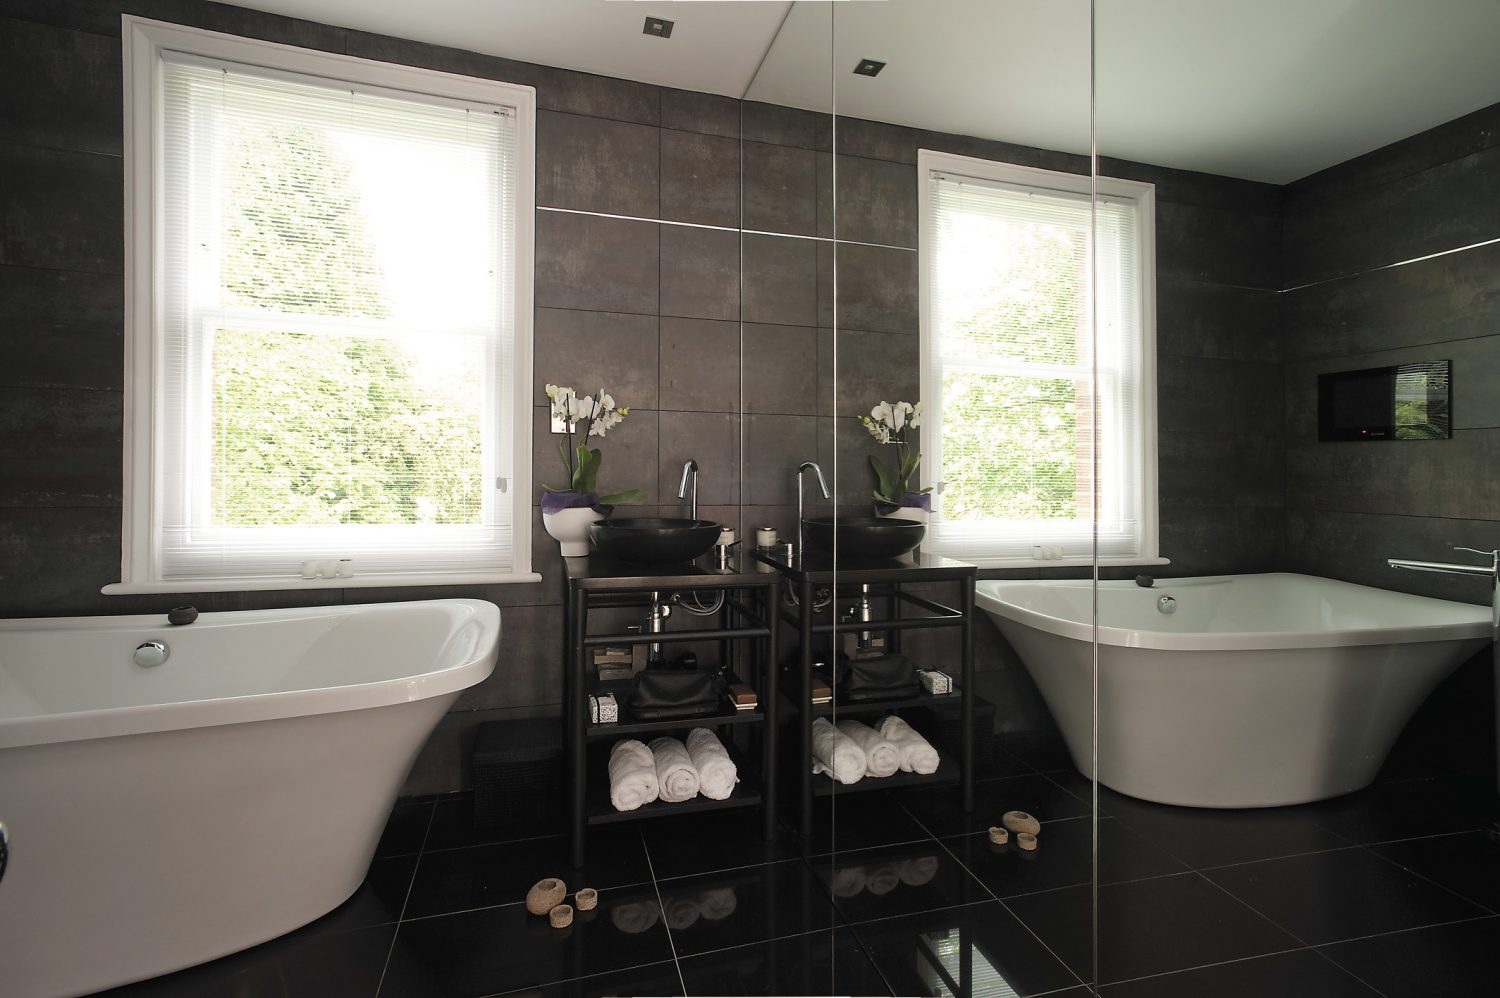 What really makes the guest bathroom truly stunning is, without doubt, the tiling